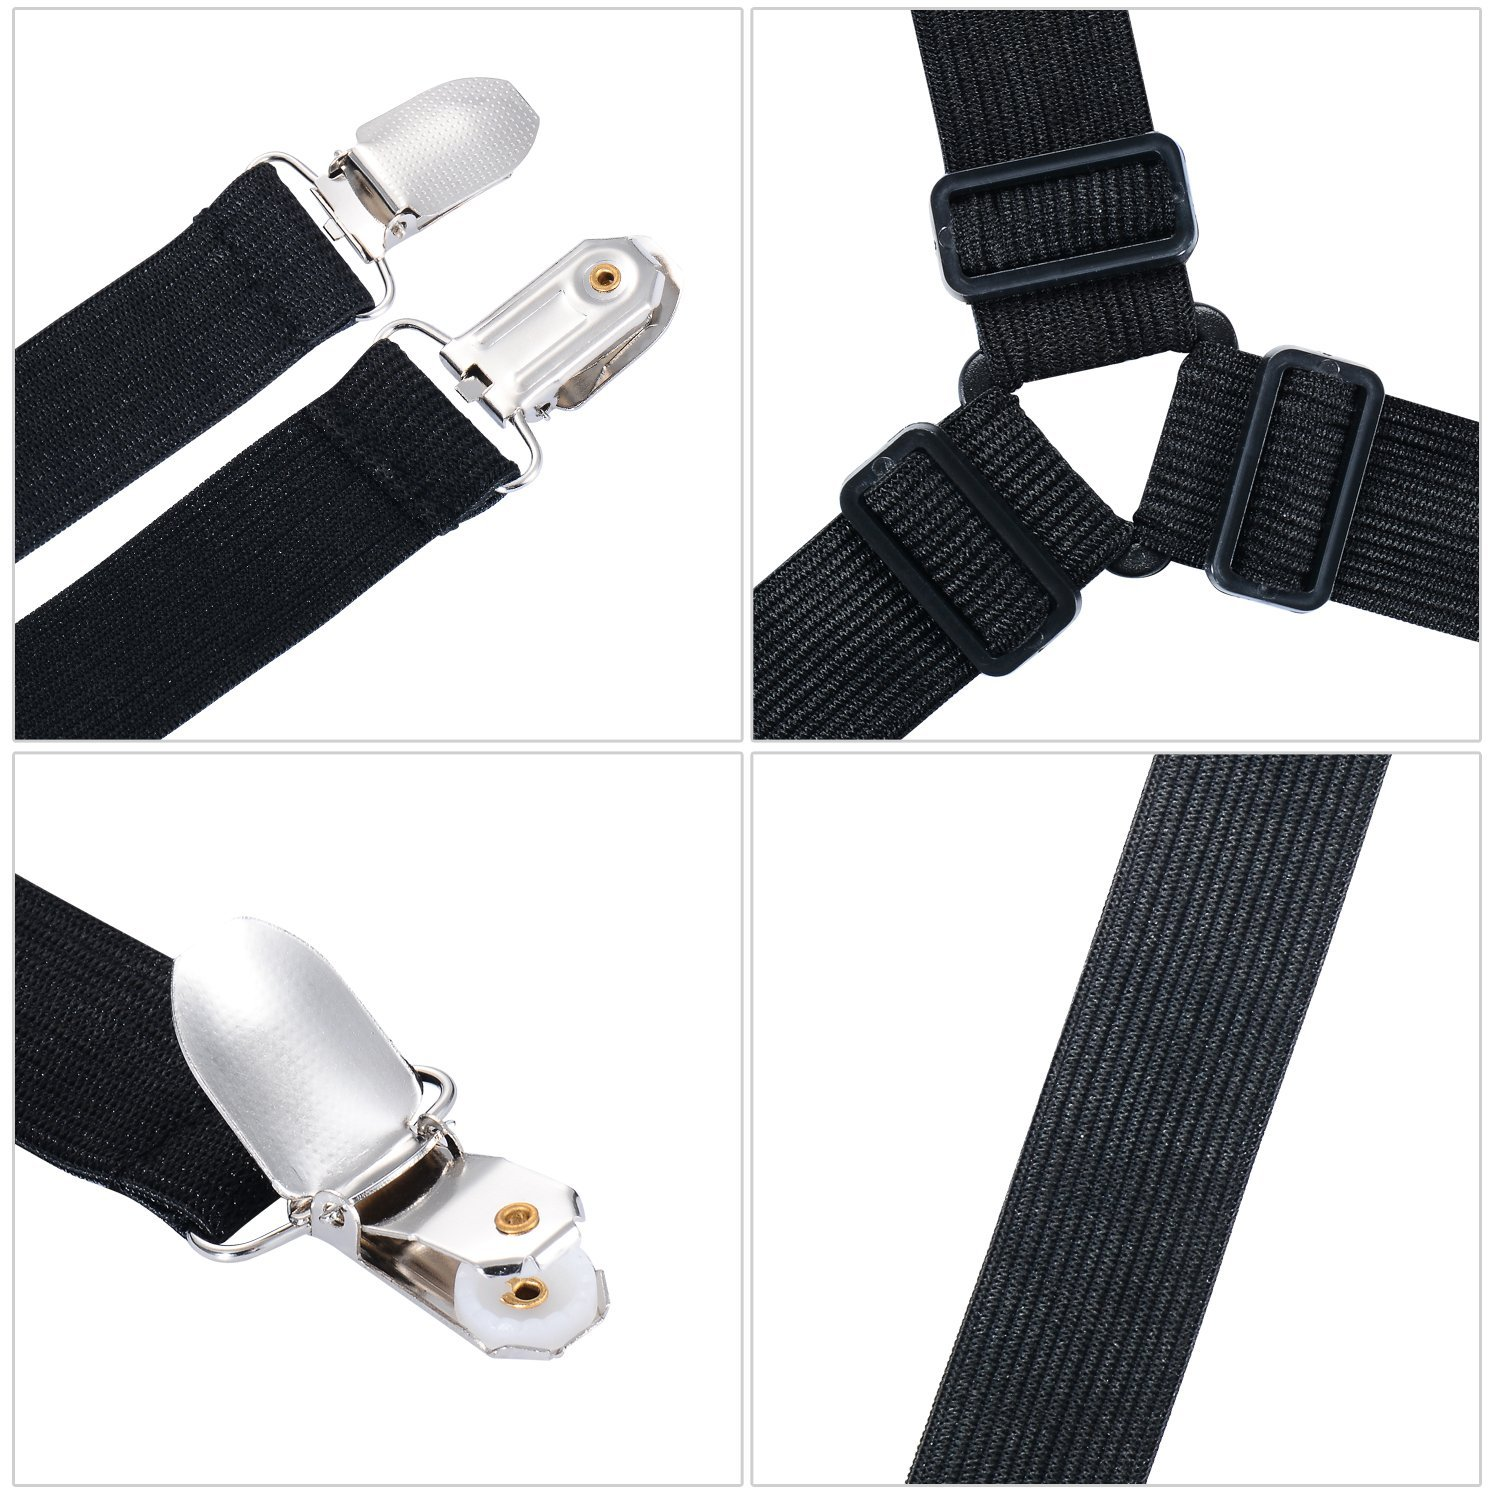 8 pcs Adjustable Bed Sheep Fasteners Suspenders Have Duty Bed Sheet Grippers Suspenders Holder Band Straps Clips Fasteners